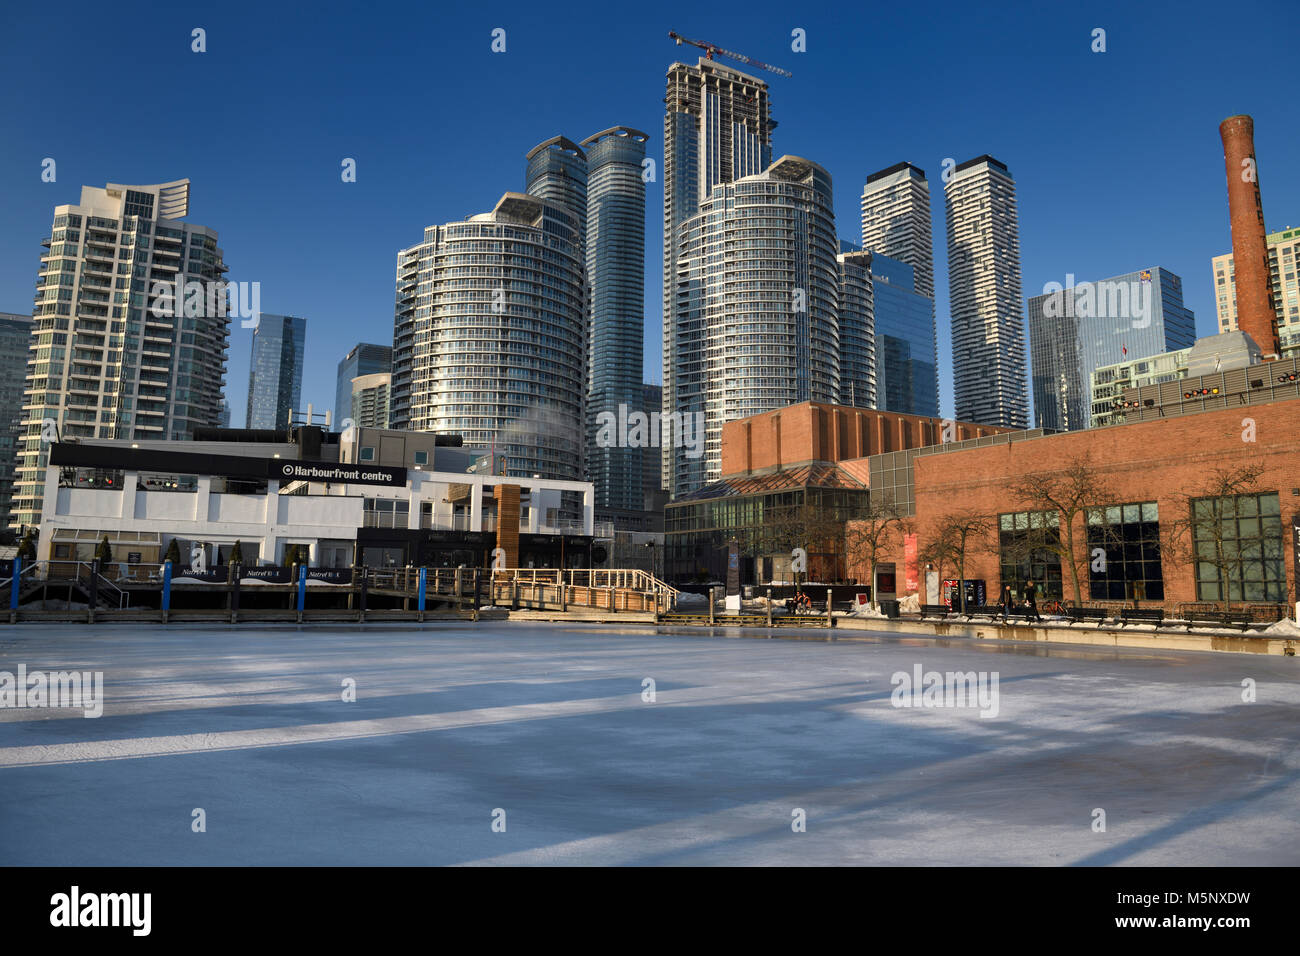 Empty Harbourfront Centre Natrel Pond skating rink with highrise condominium towers and Power Plant contemporary - Stock Image